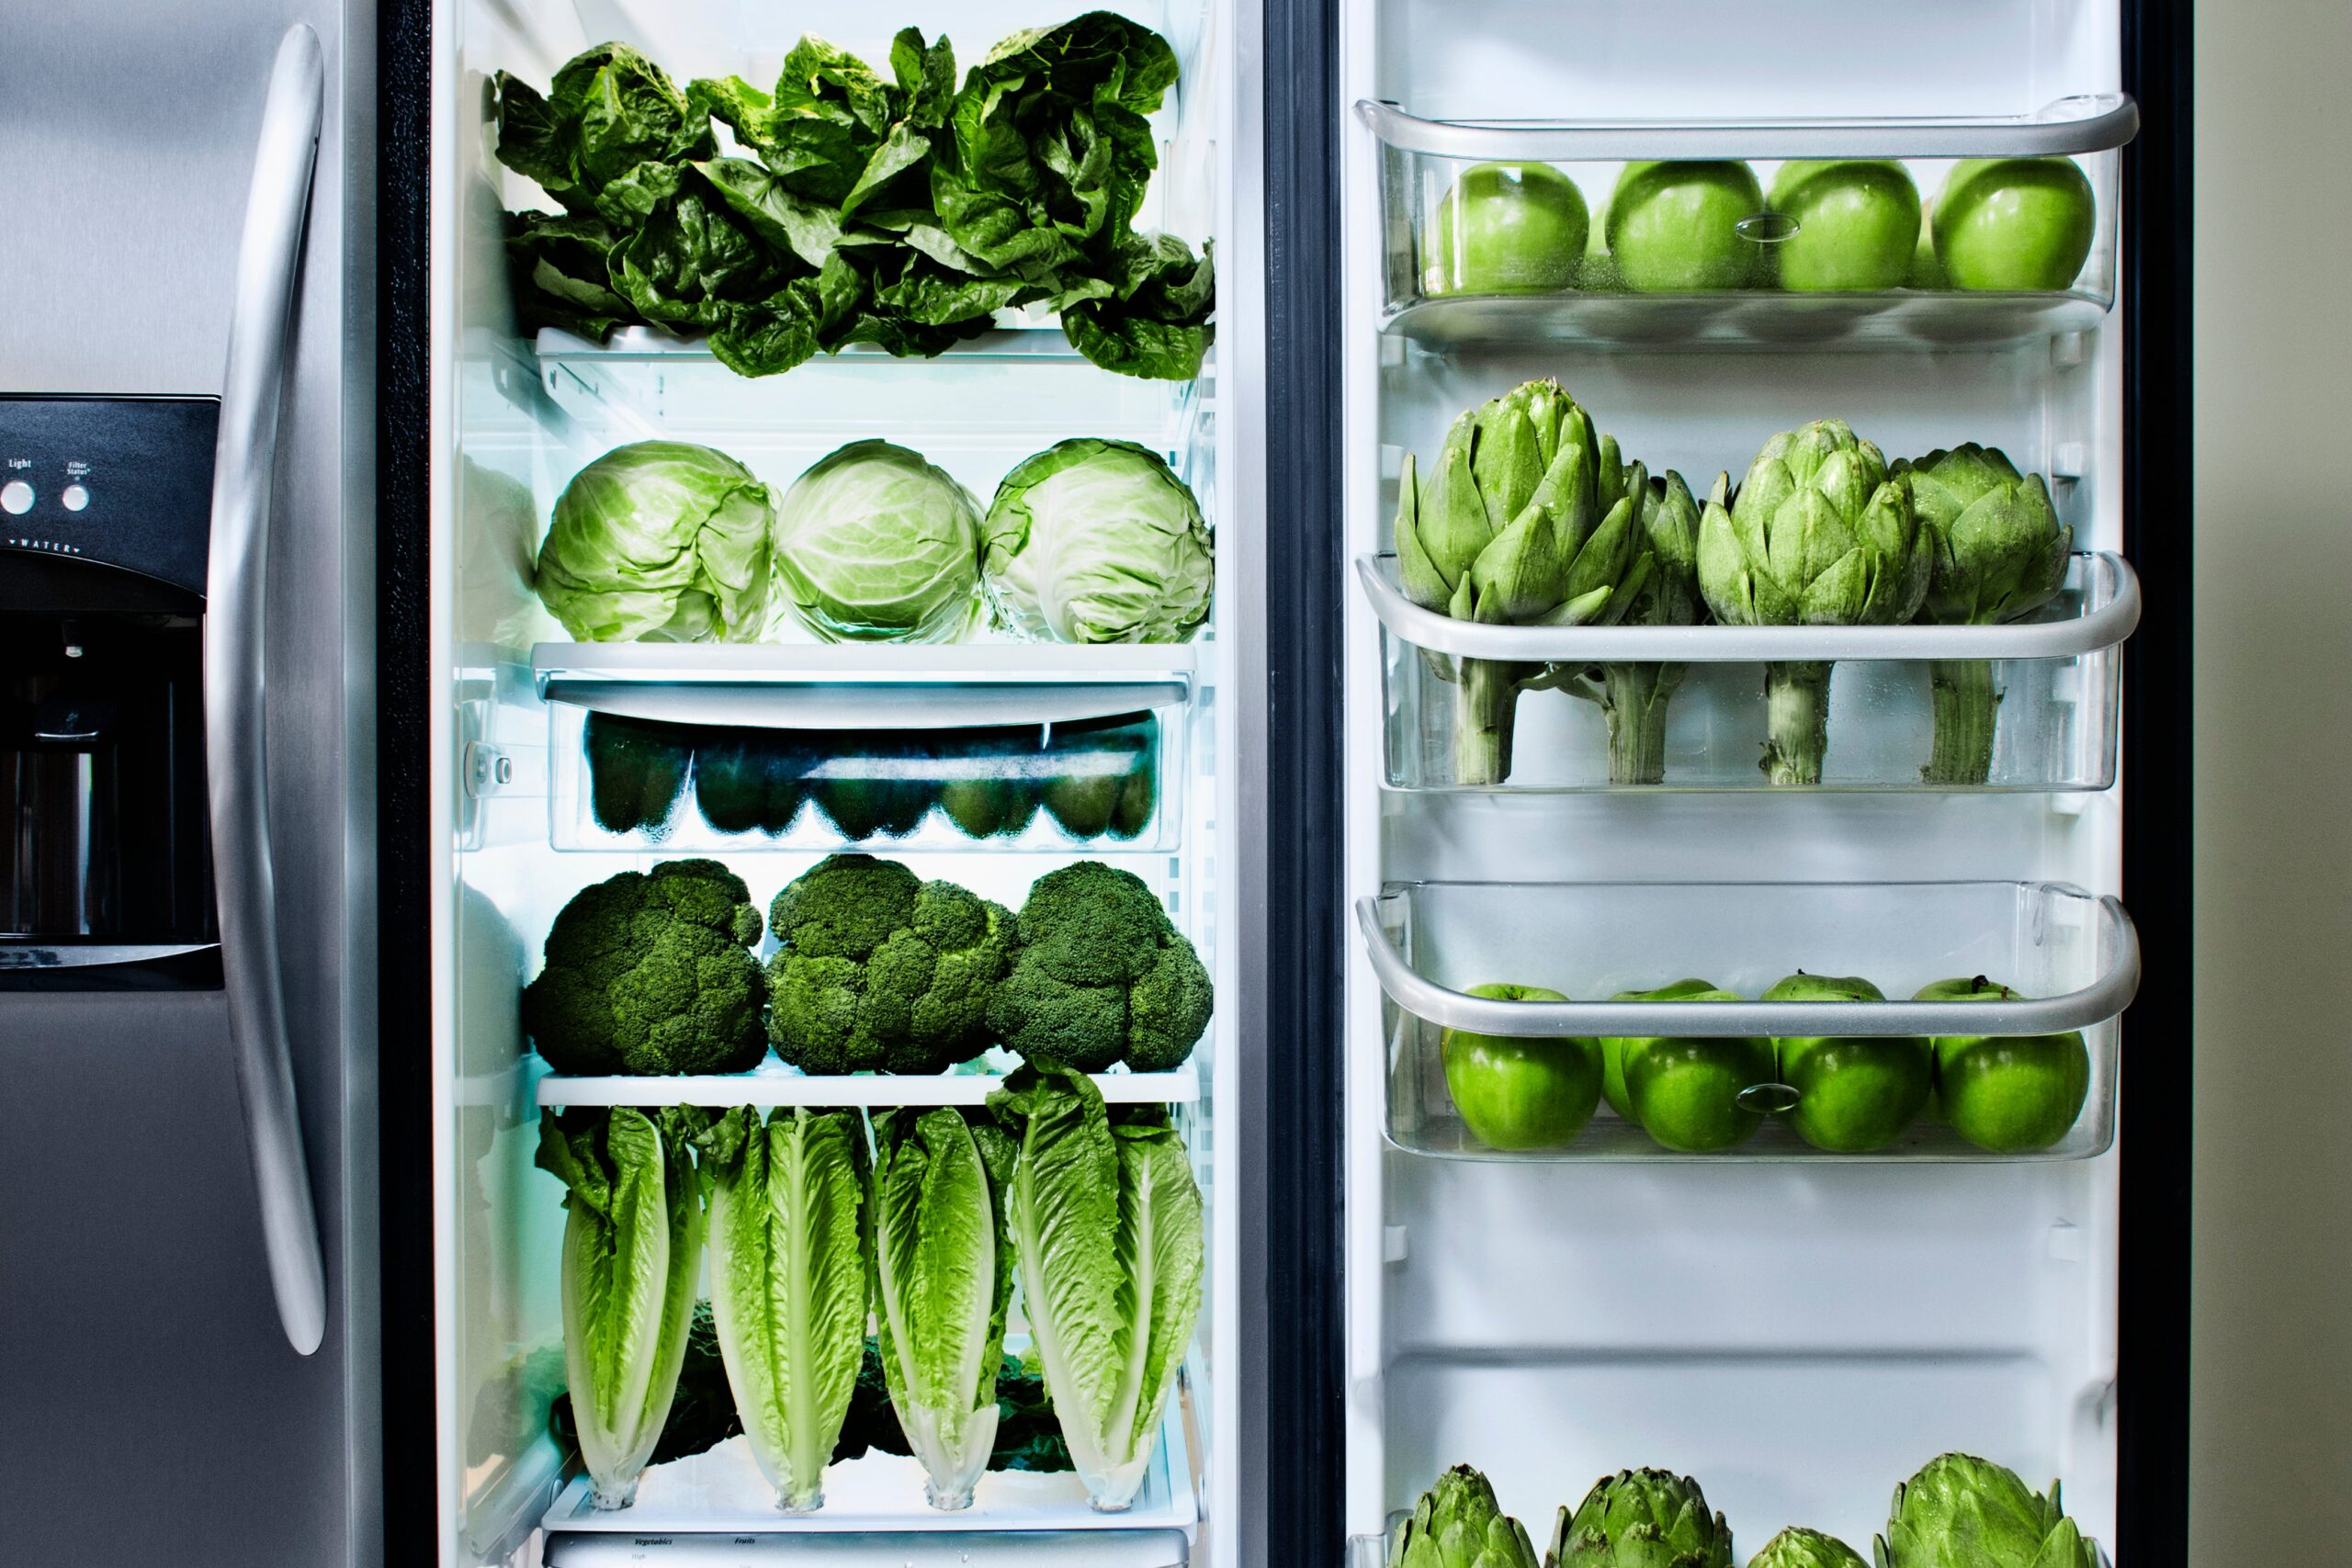 A Simple Twist of Thermodynamics Could Lead to Greener Refrigeration